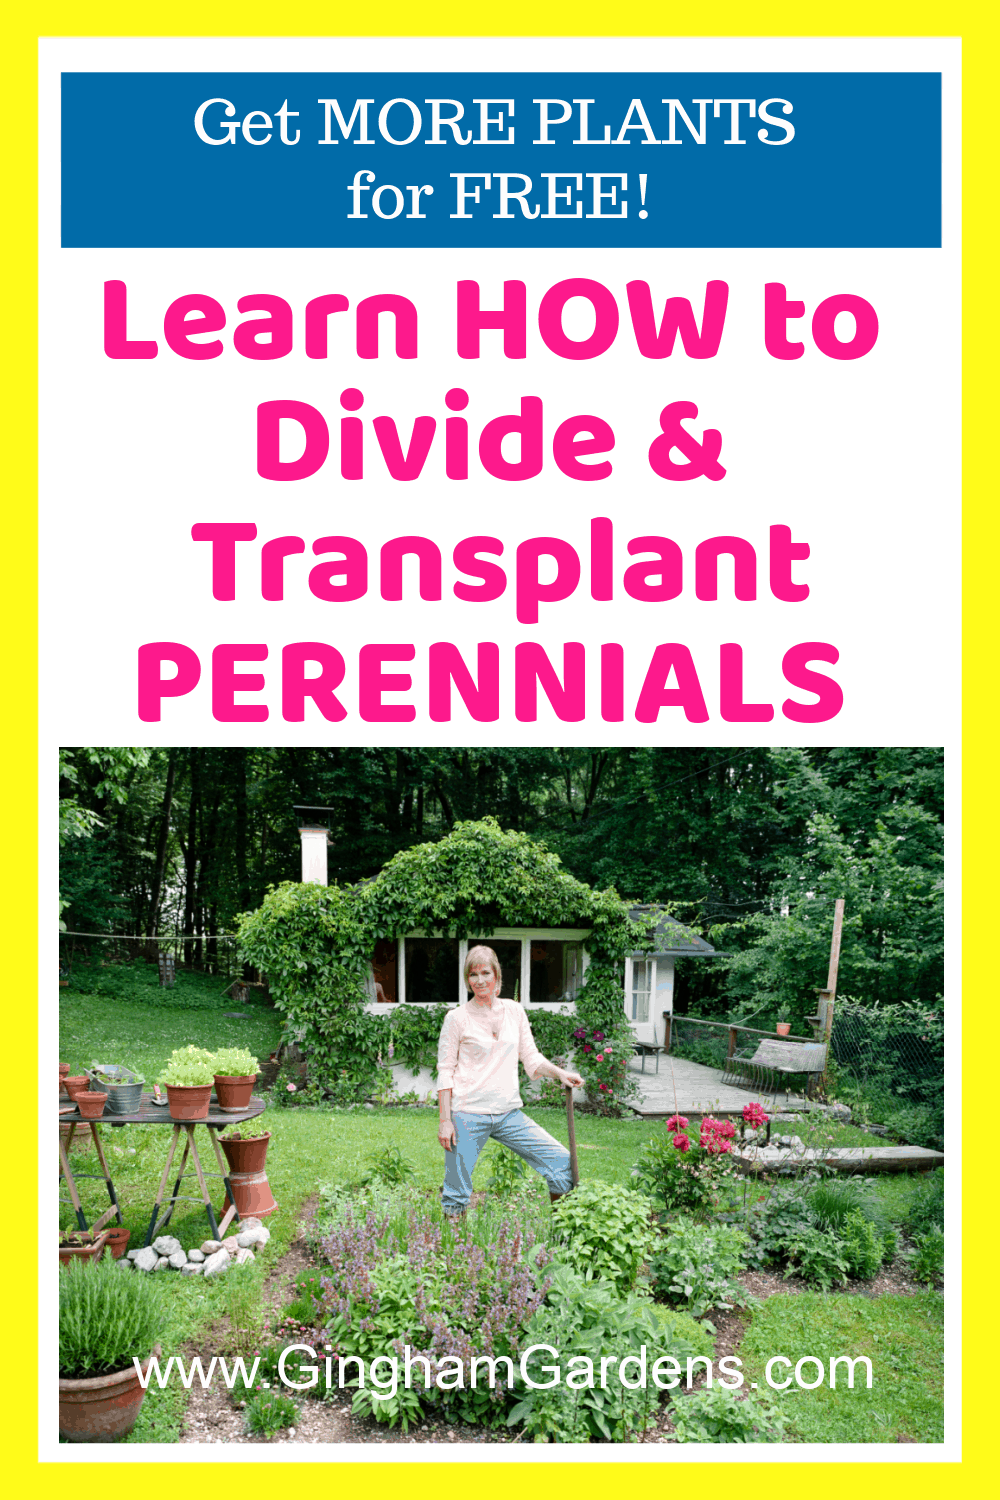 Image of a Gardener in a Garden with text overlay - Learn How to Divide & Transplant Perennials